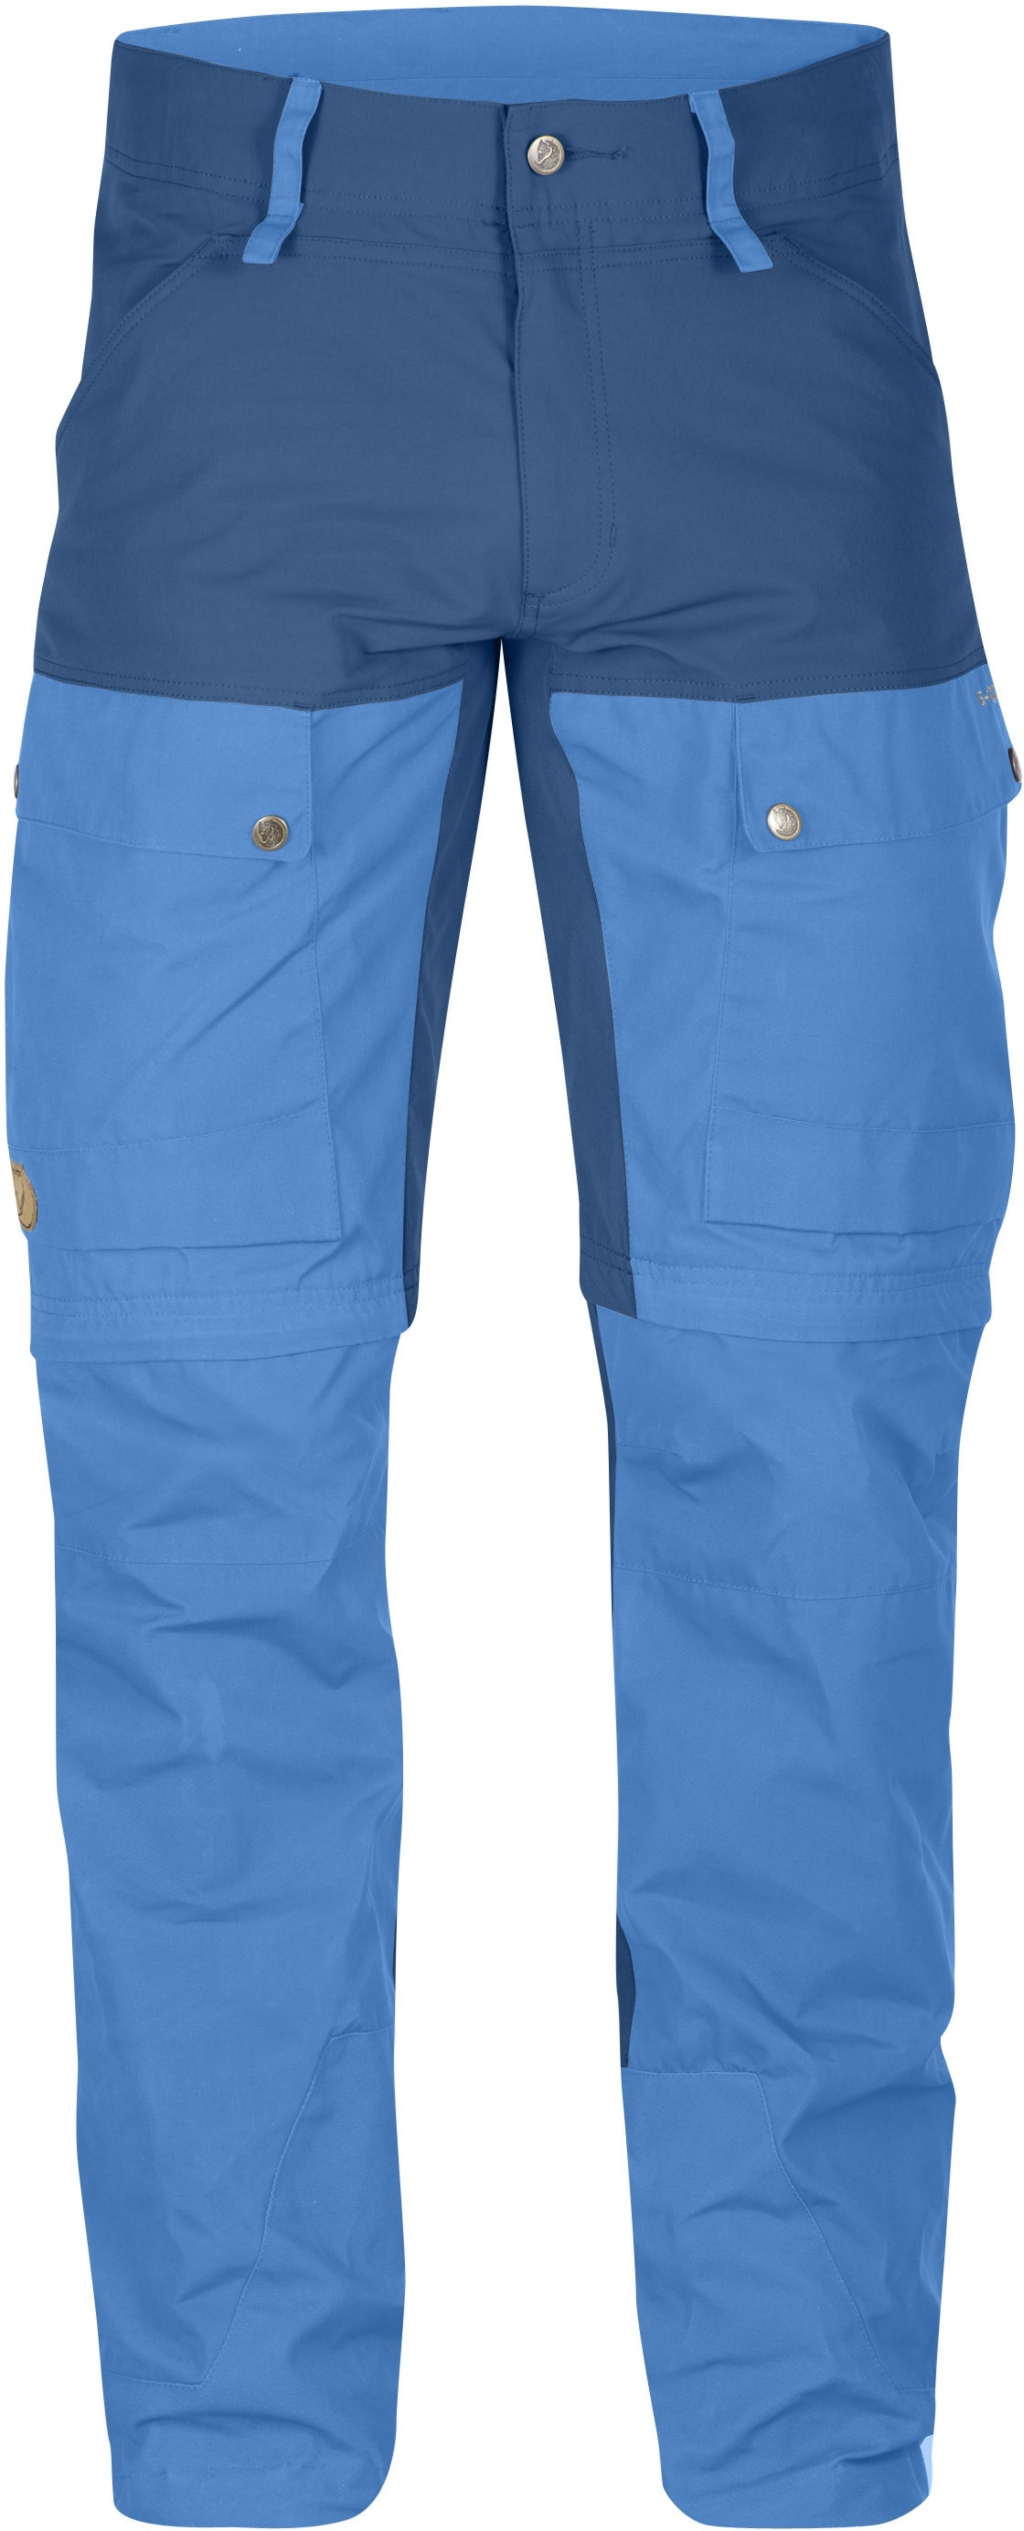 FjallRaven Keb Gaiter Trousers Regular UN Blue-30